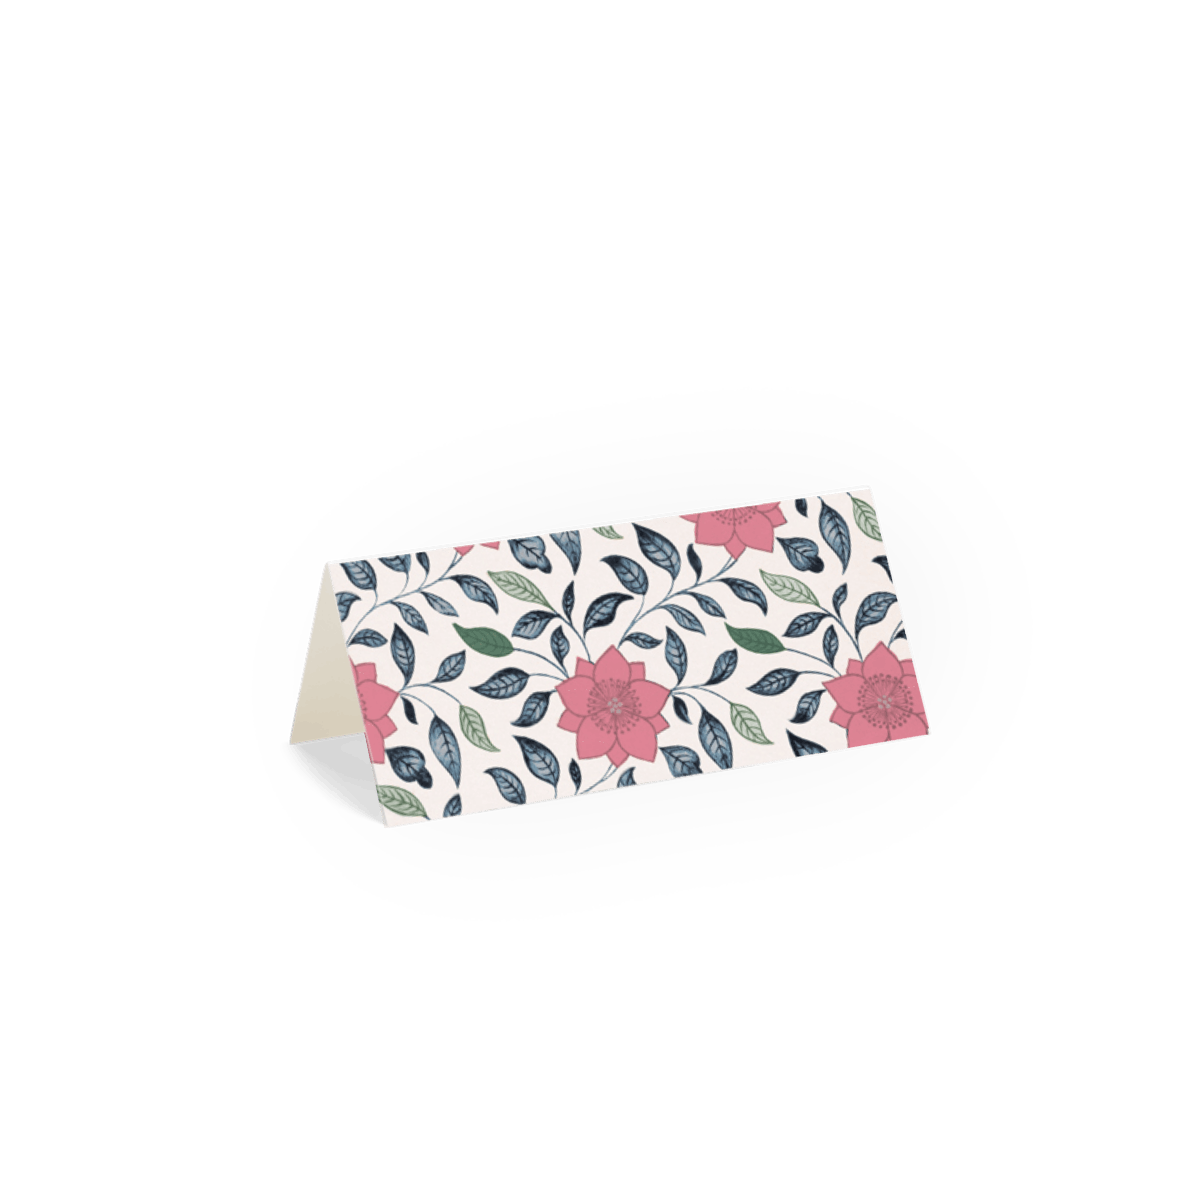 Https%3a%2f%2fwww.papier.com%2fproduct image%2f82527%2f15%2fpink lotus 19976 back 1562149333.png?ixlib=rb 1.1